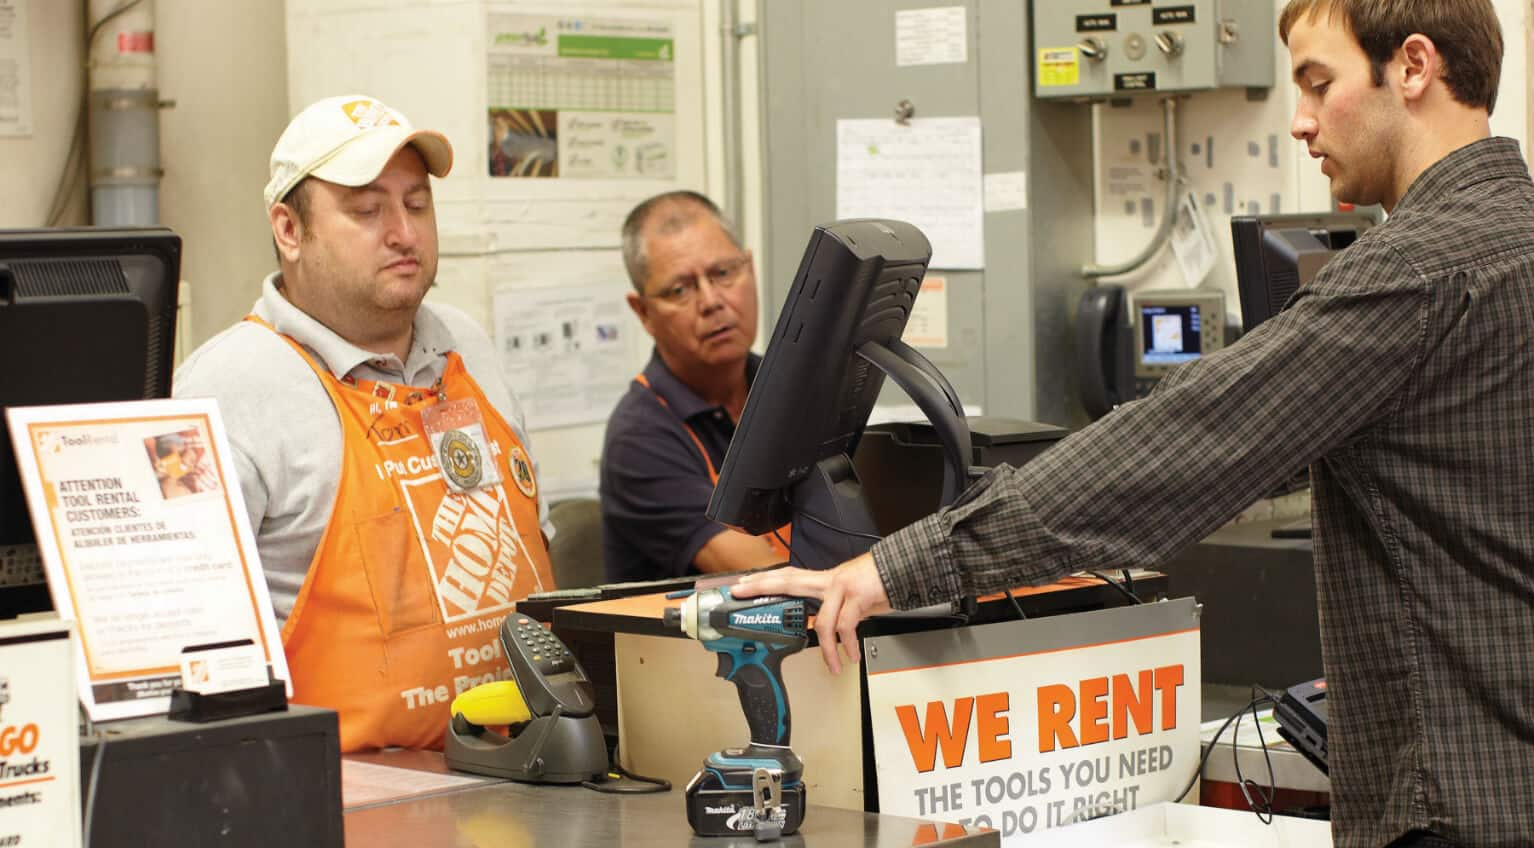 customer at The Home Depot rental desk renting an impact driver